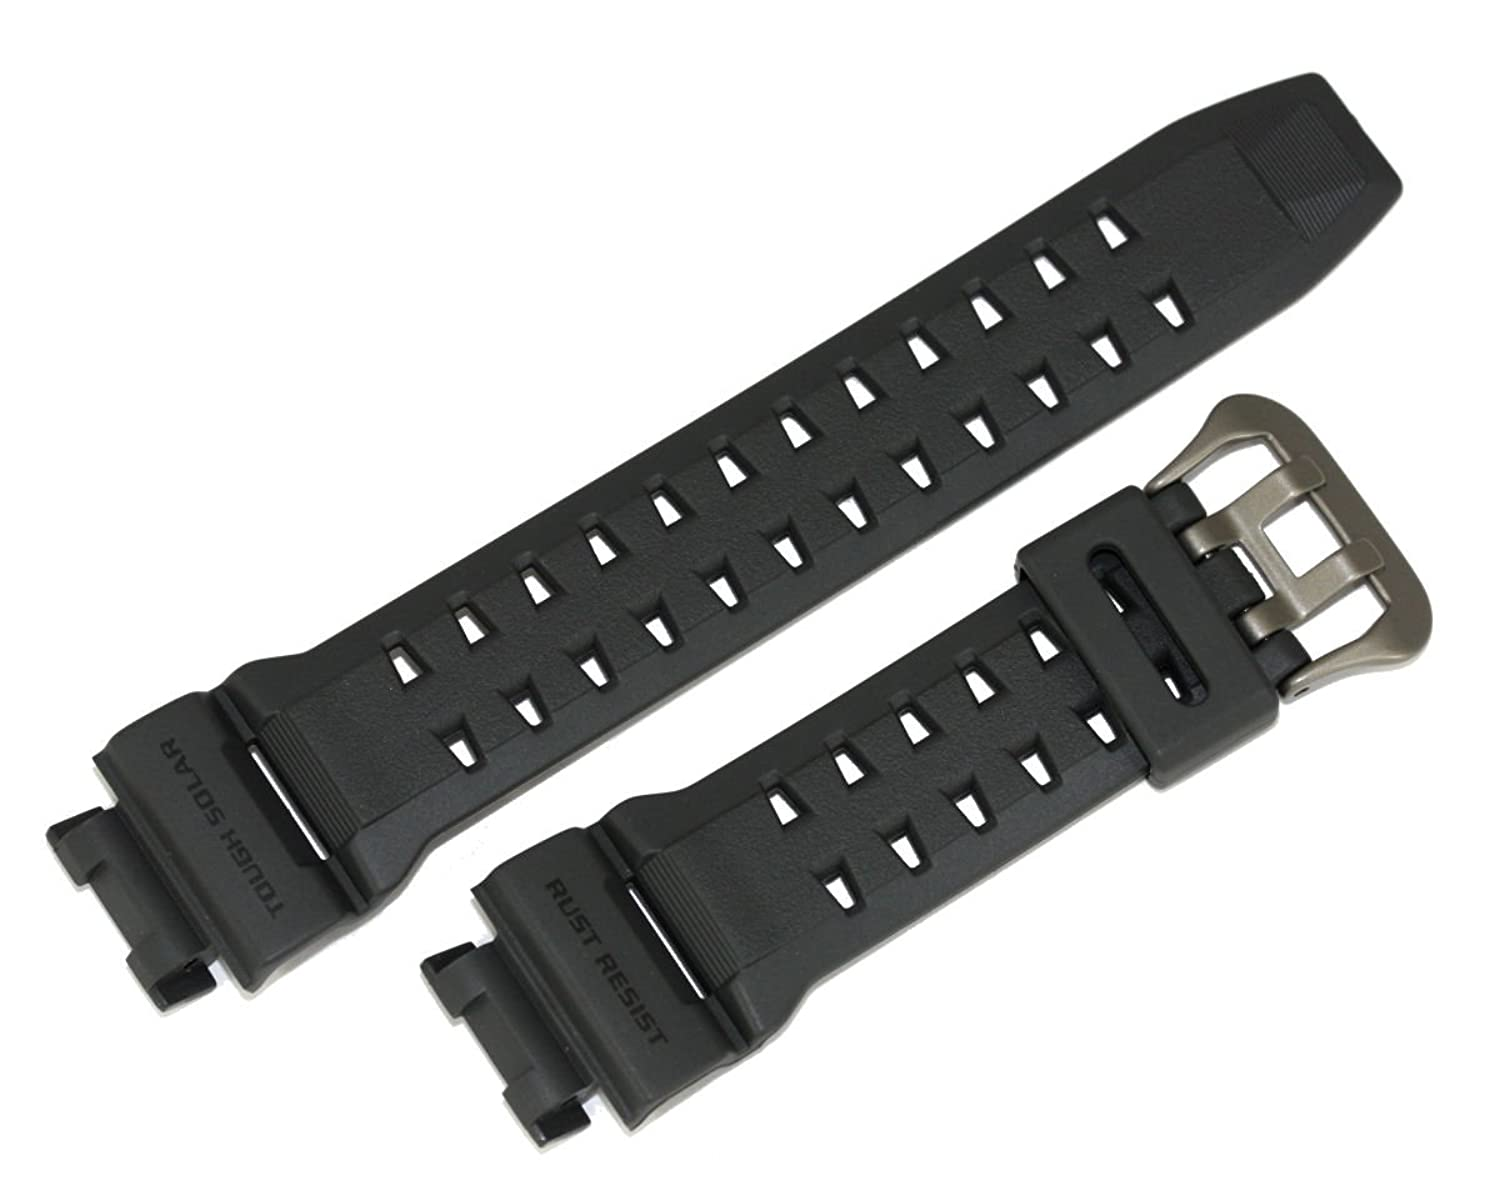 Casio 10395438 Genuine Factory Replacement Resin Band Fits gr-9110gy-1 V  B077PLHVK4